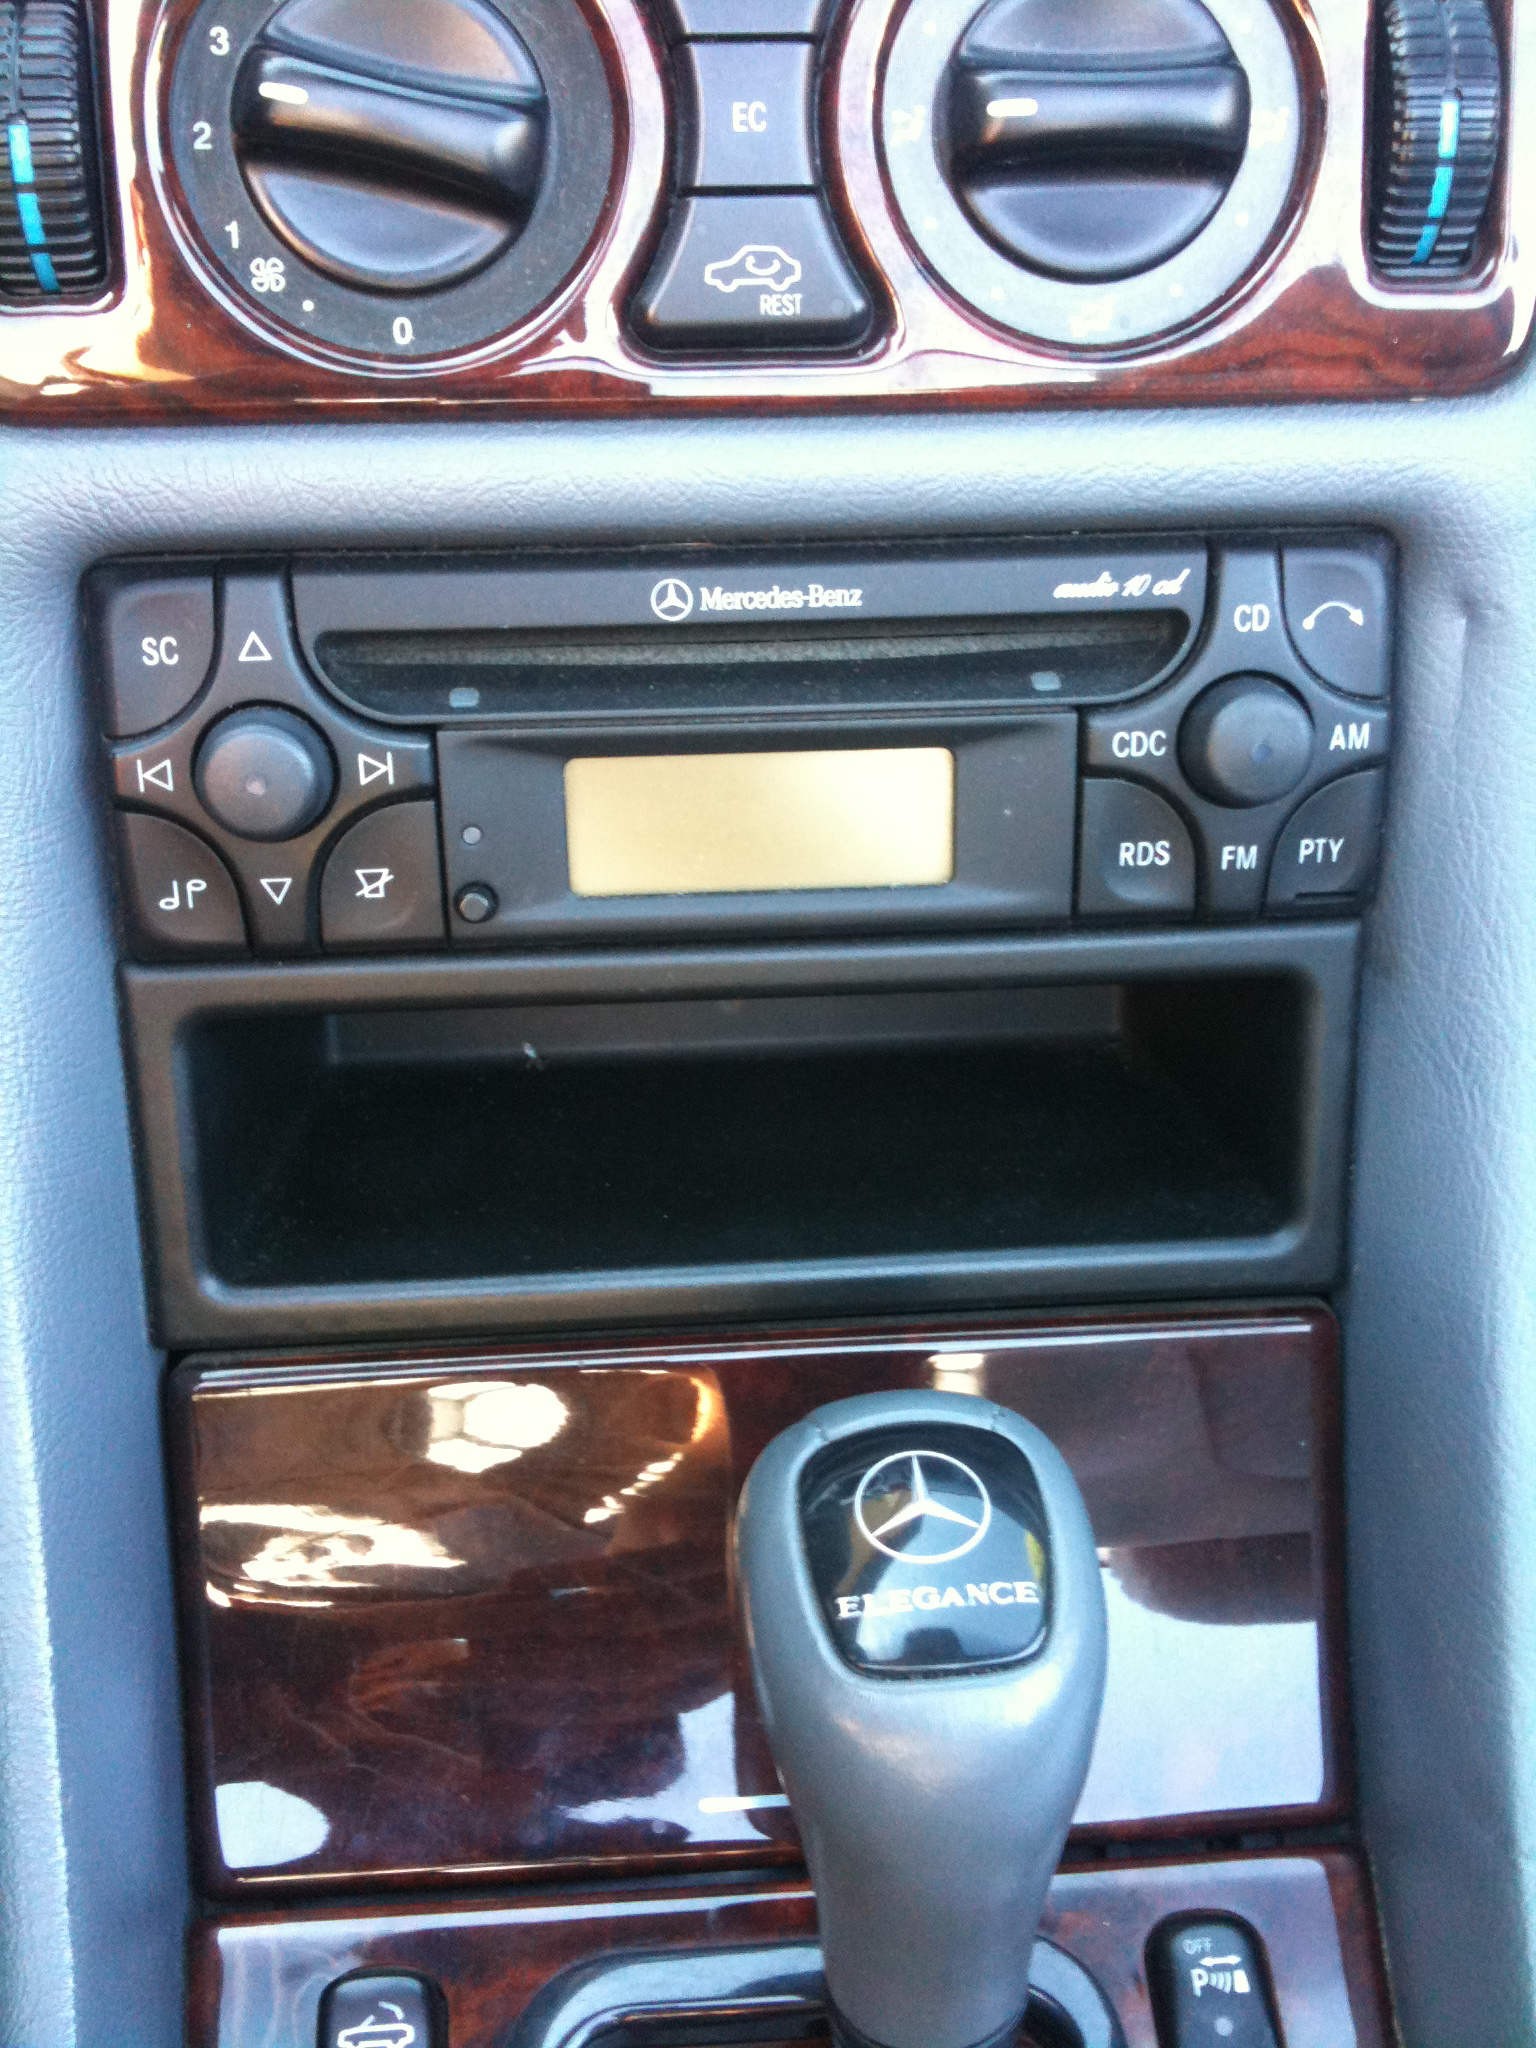 autoradio sur clk 320 cab de 04 99 clk mercedes. Black Bedroom Furniture Sets. Home Design Ideas